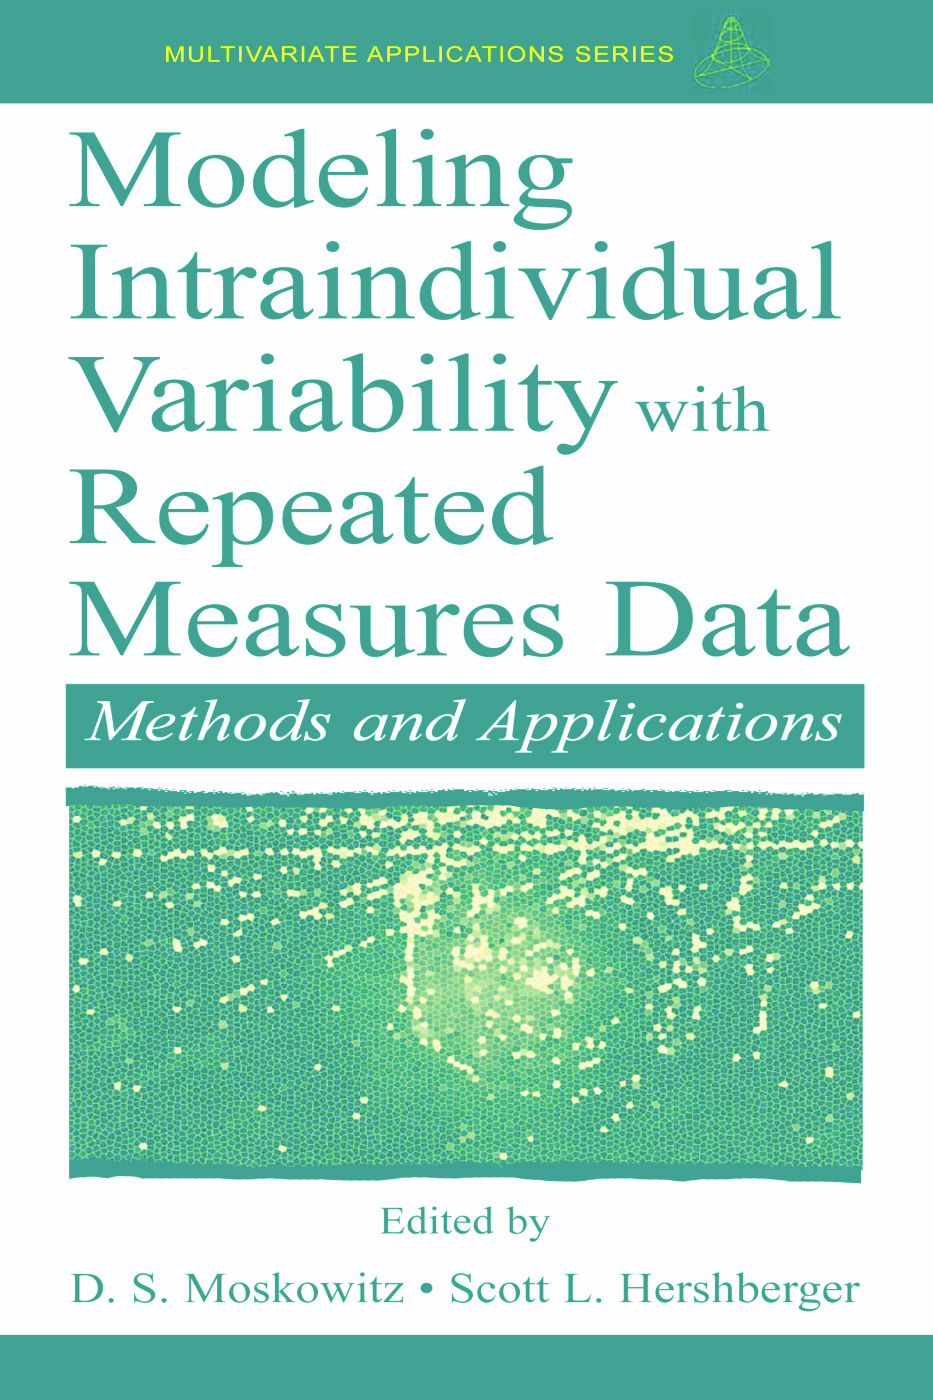 Modeling Intraindividual Variability With Repeated Measures Data